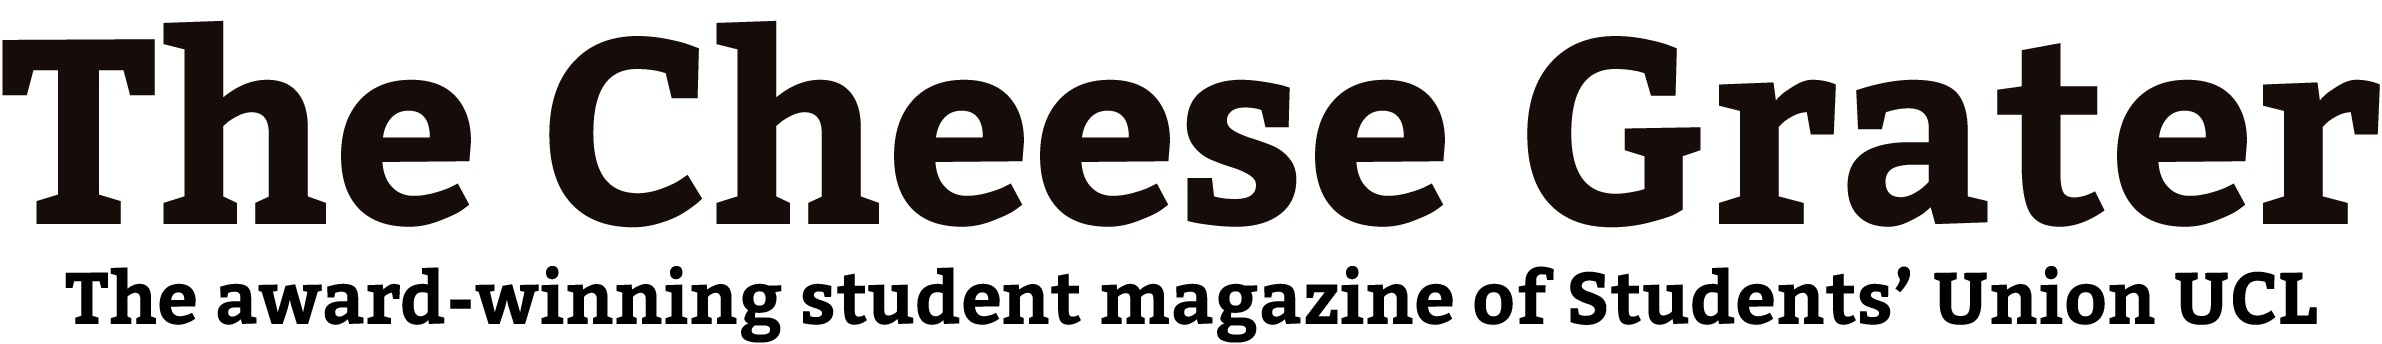 Cheese Grater Magazine